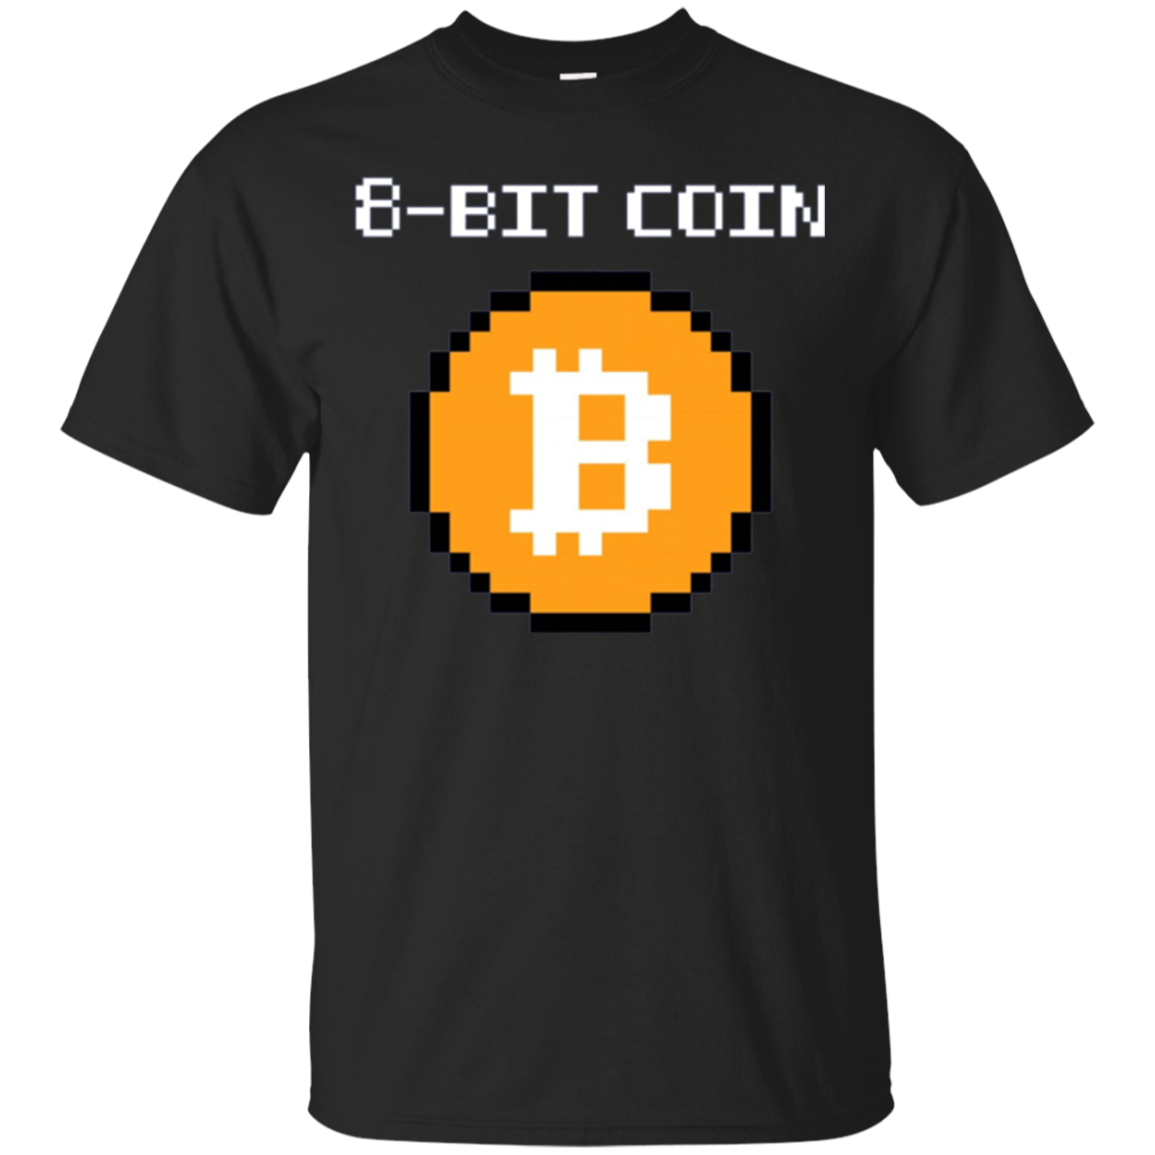 Retro Bitcoin 8-Bit Logo T-Shirt For Crypto Currency Traders